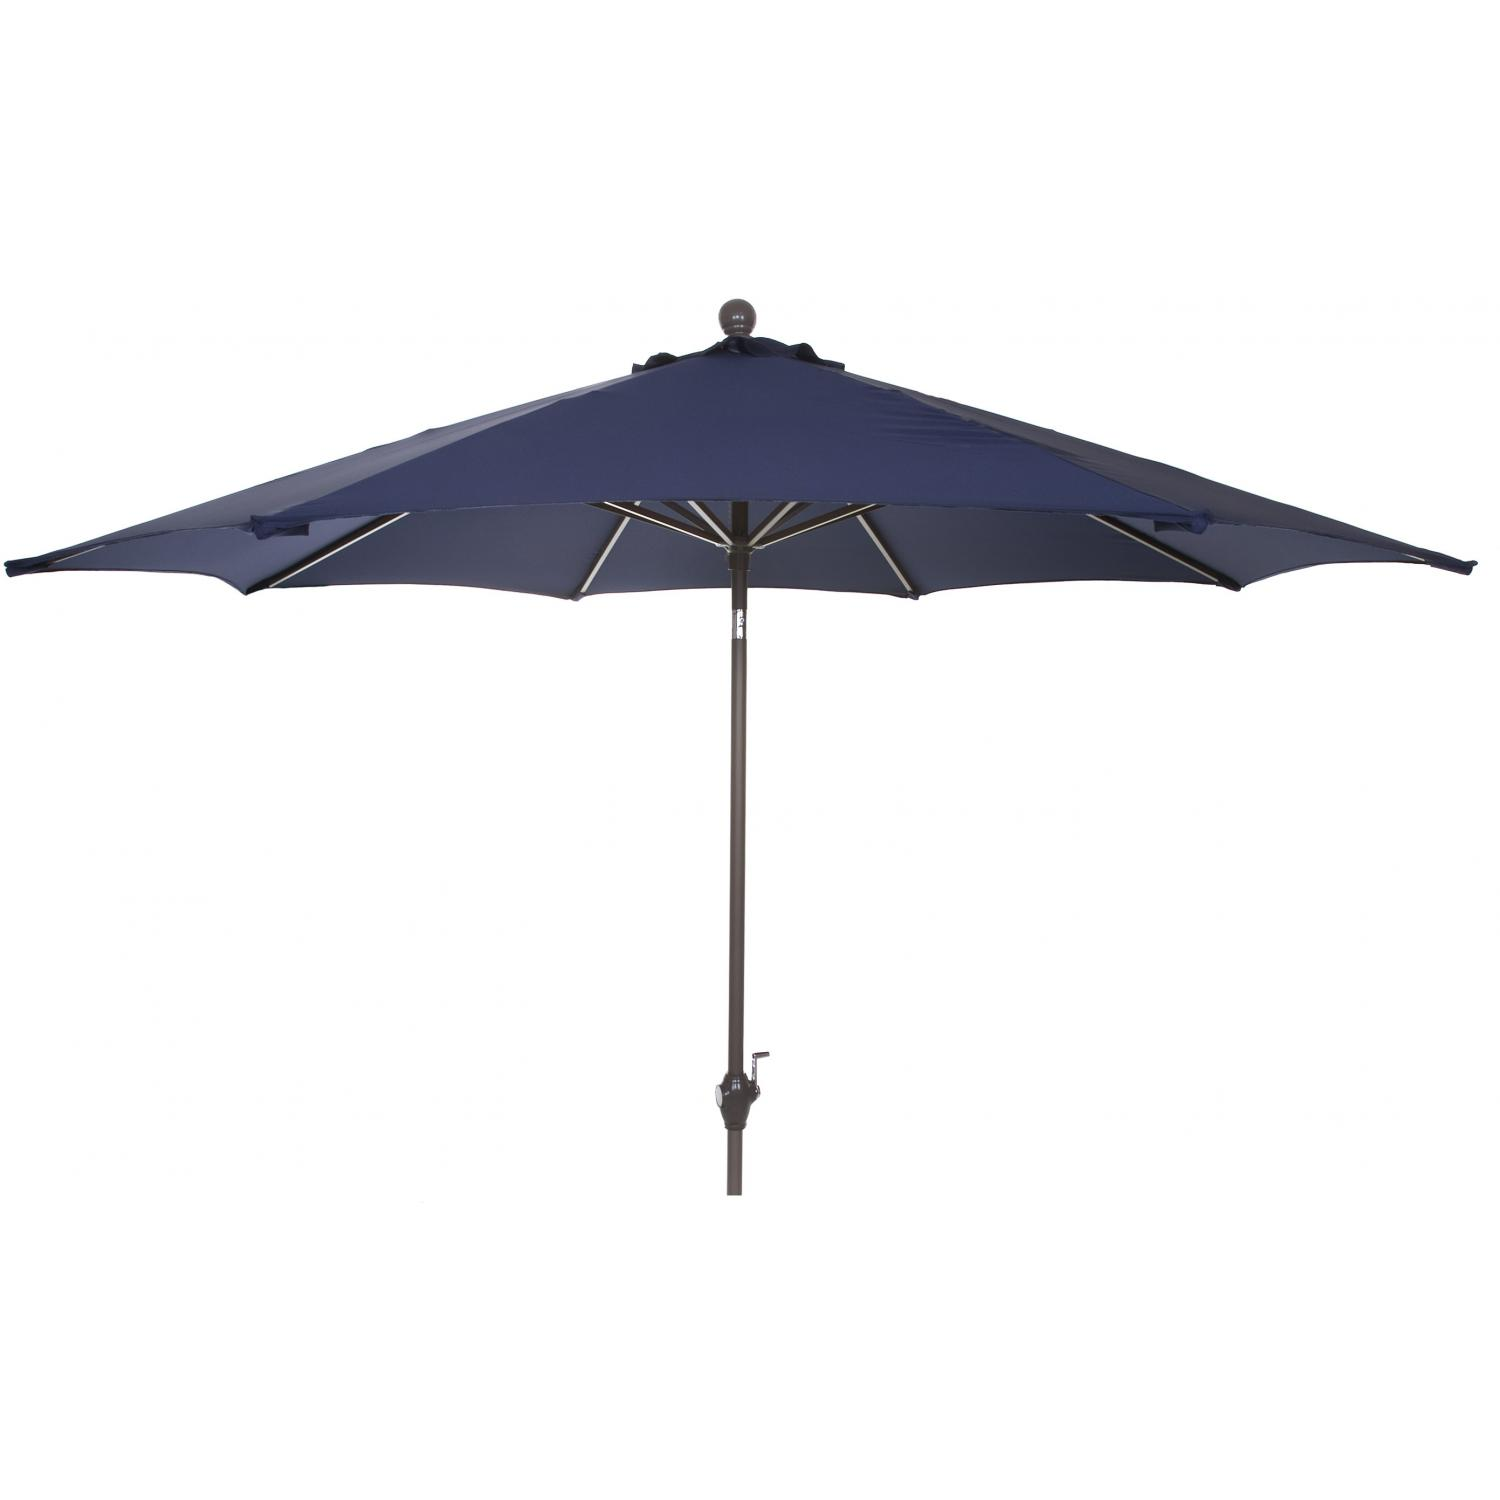 Picture of 9 Ft Aluminum Patio Umbrella - Navy Blue